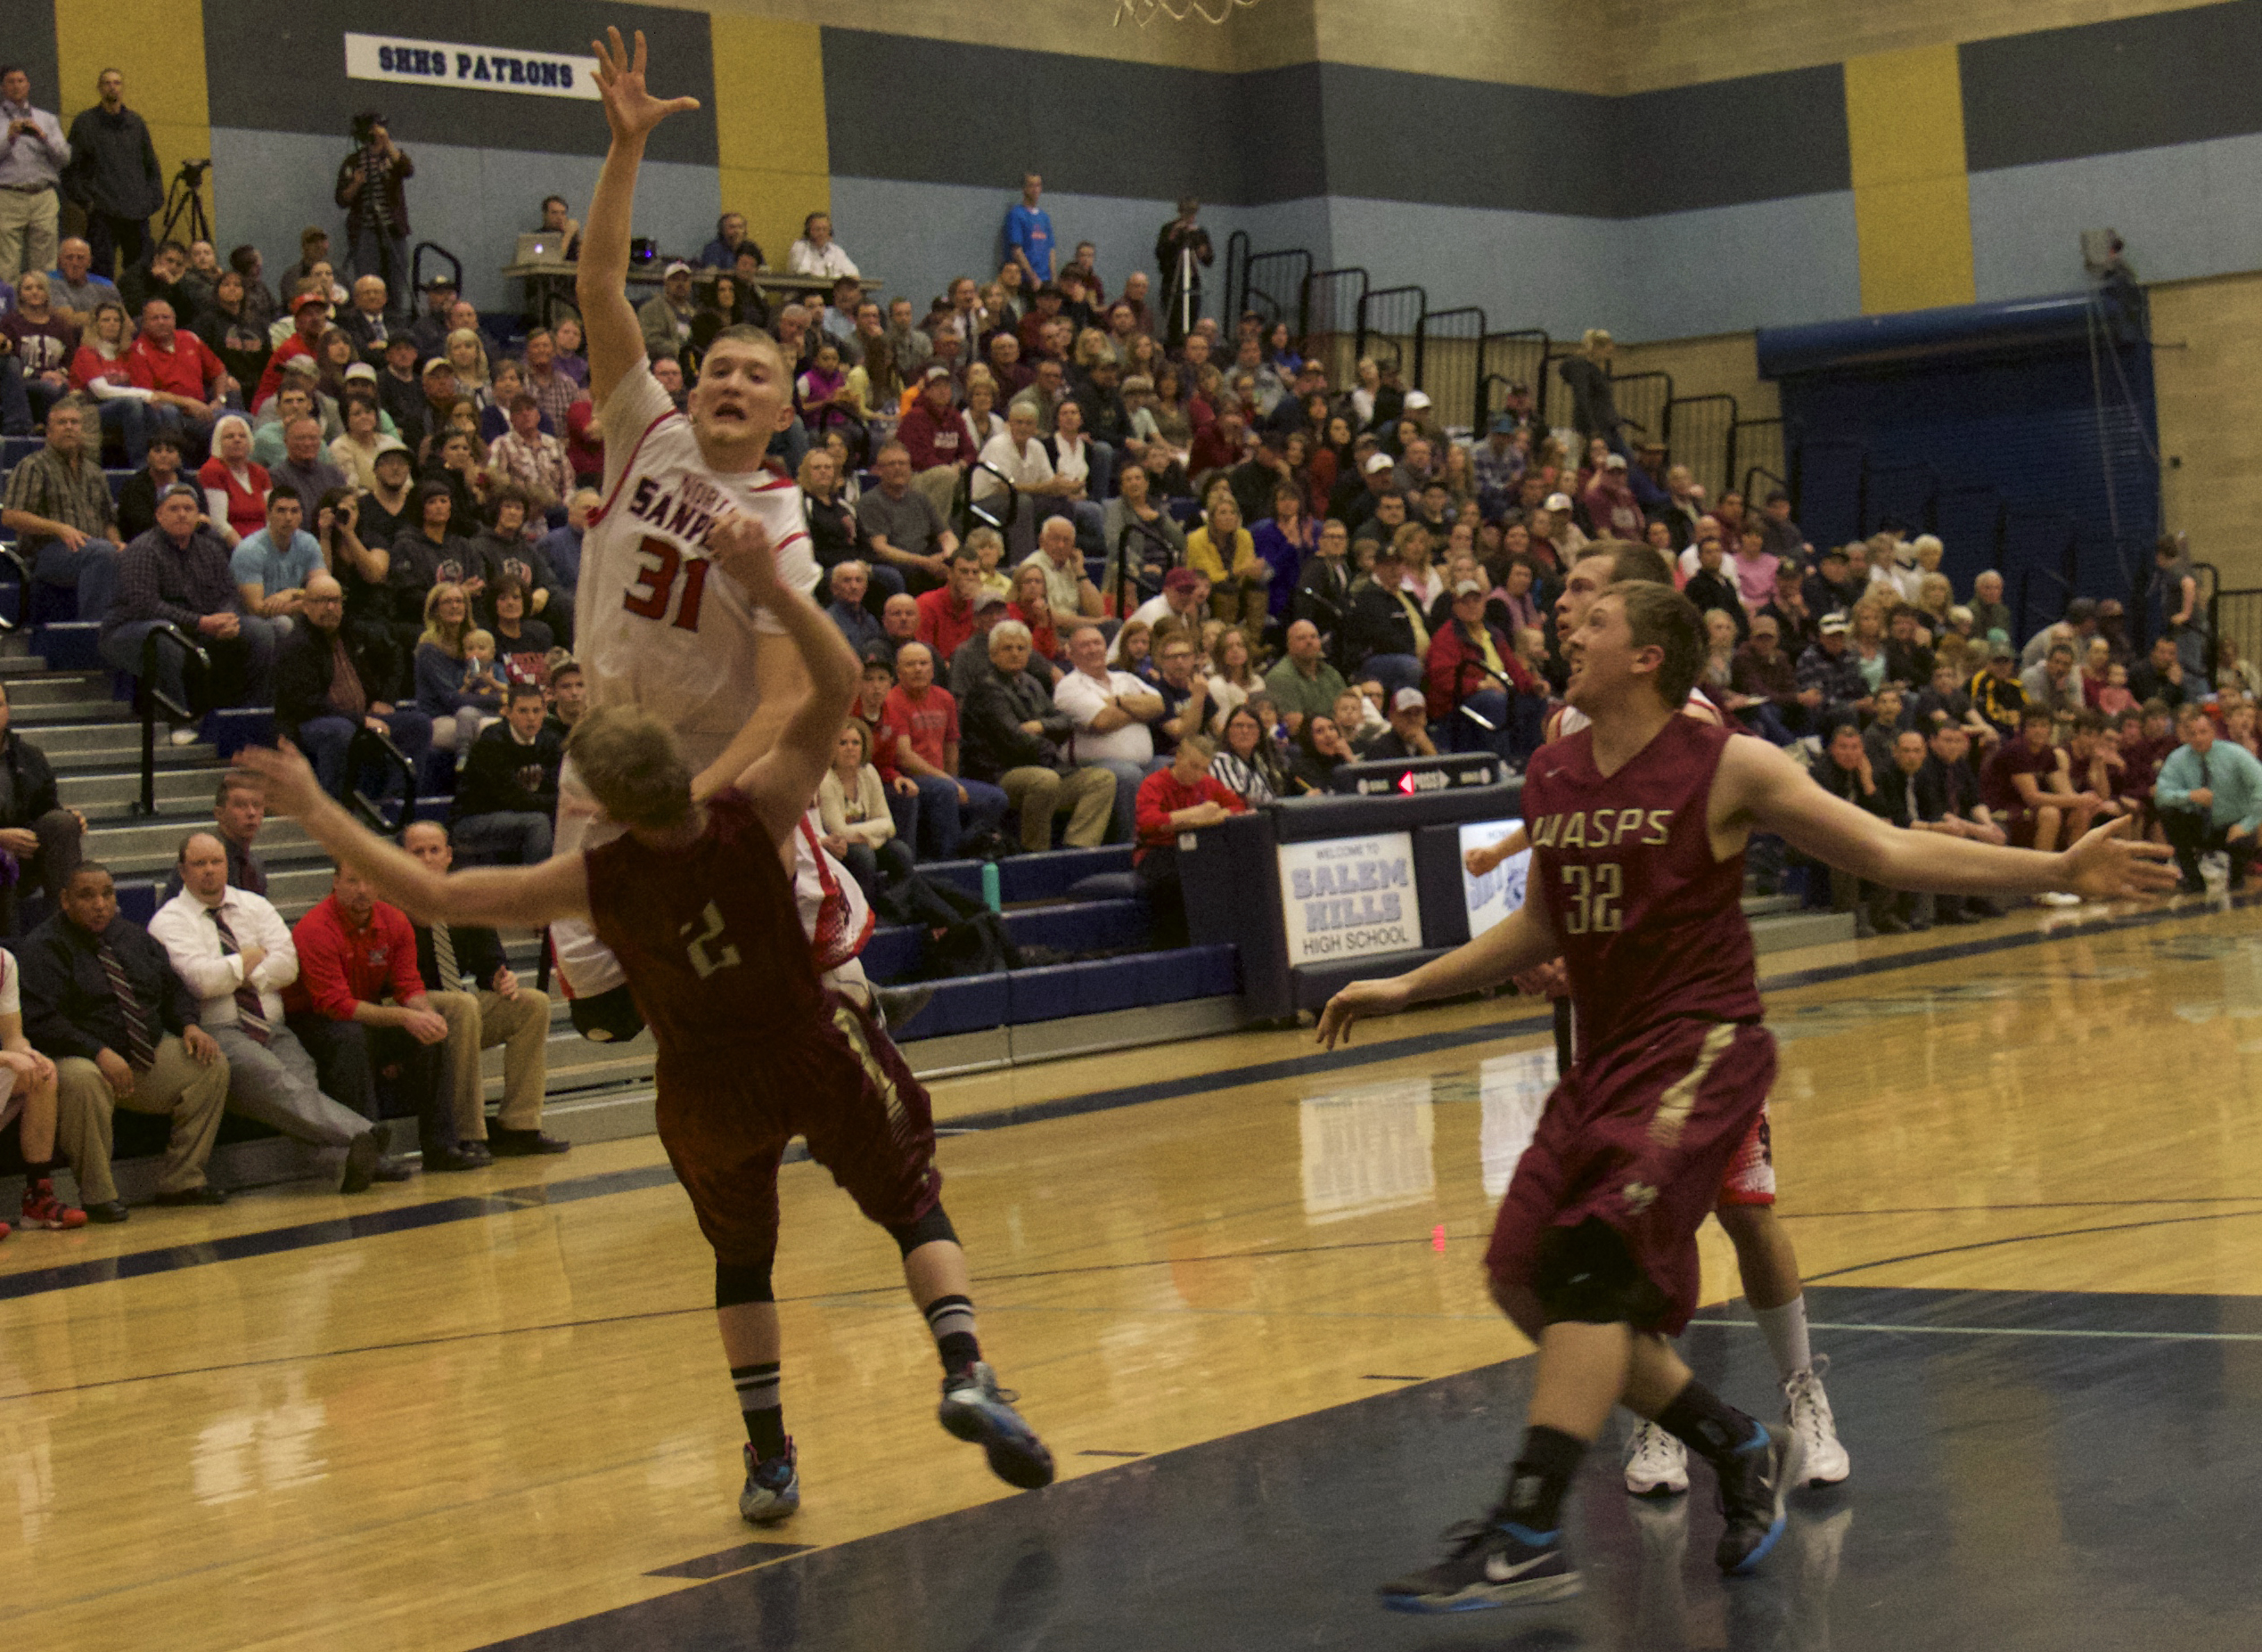 Senior Dakota Anderson (31) goes up for a layup as a Juab defender tries to draw the charge. NS fell to the Wasps, 60-57 in overtime.